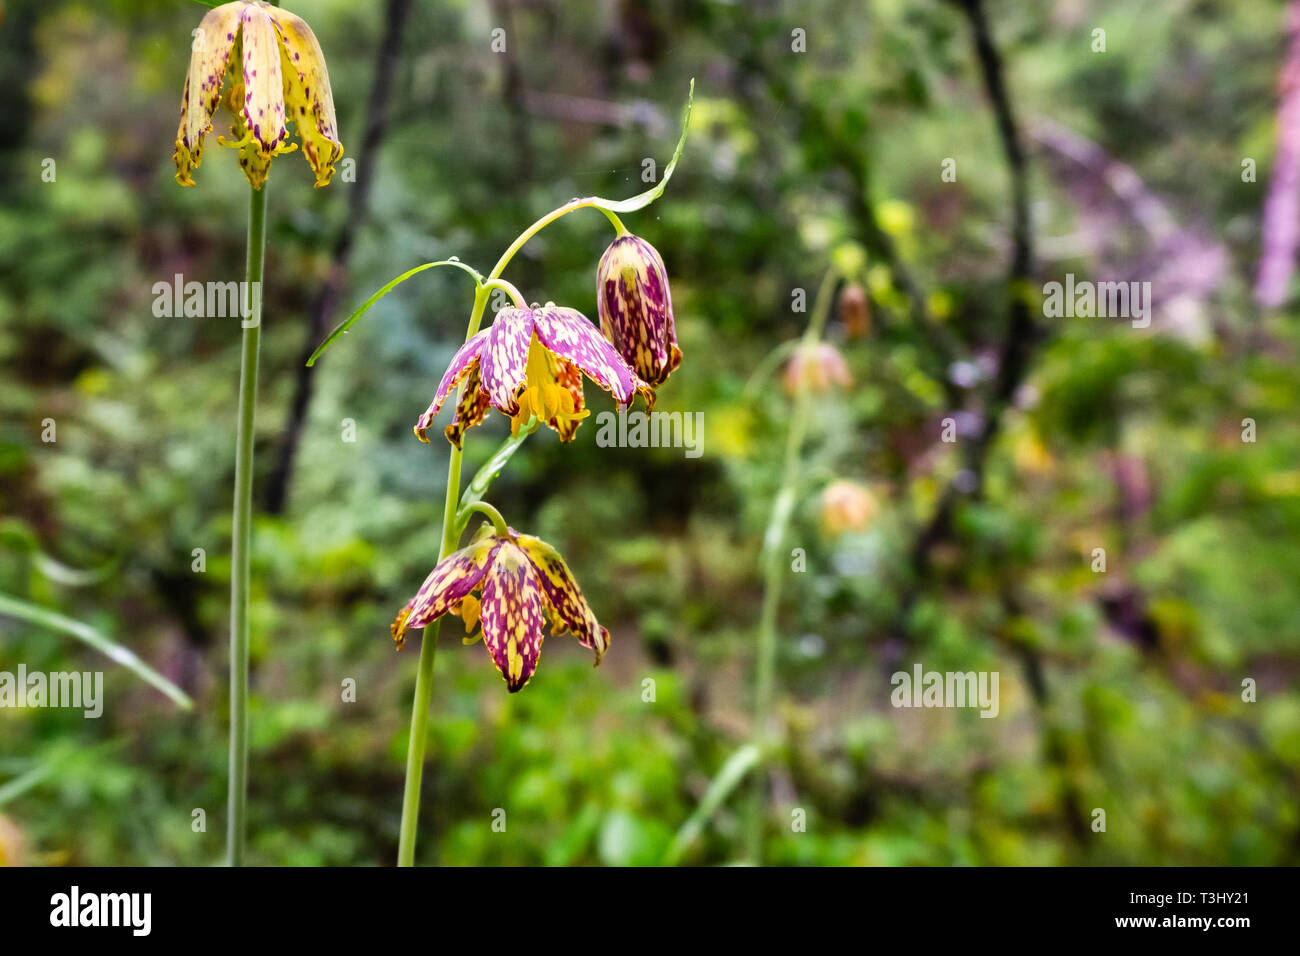 Close up of Checker lily (Fritillaria affinis) wildlflower blooming in a forest in San Francisco bay area, California Stock Photo